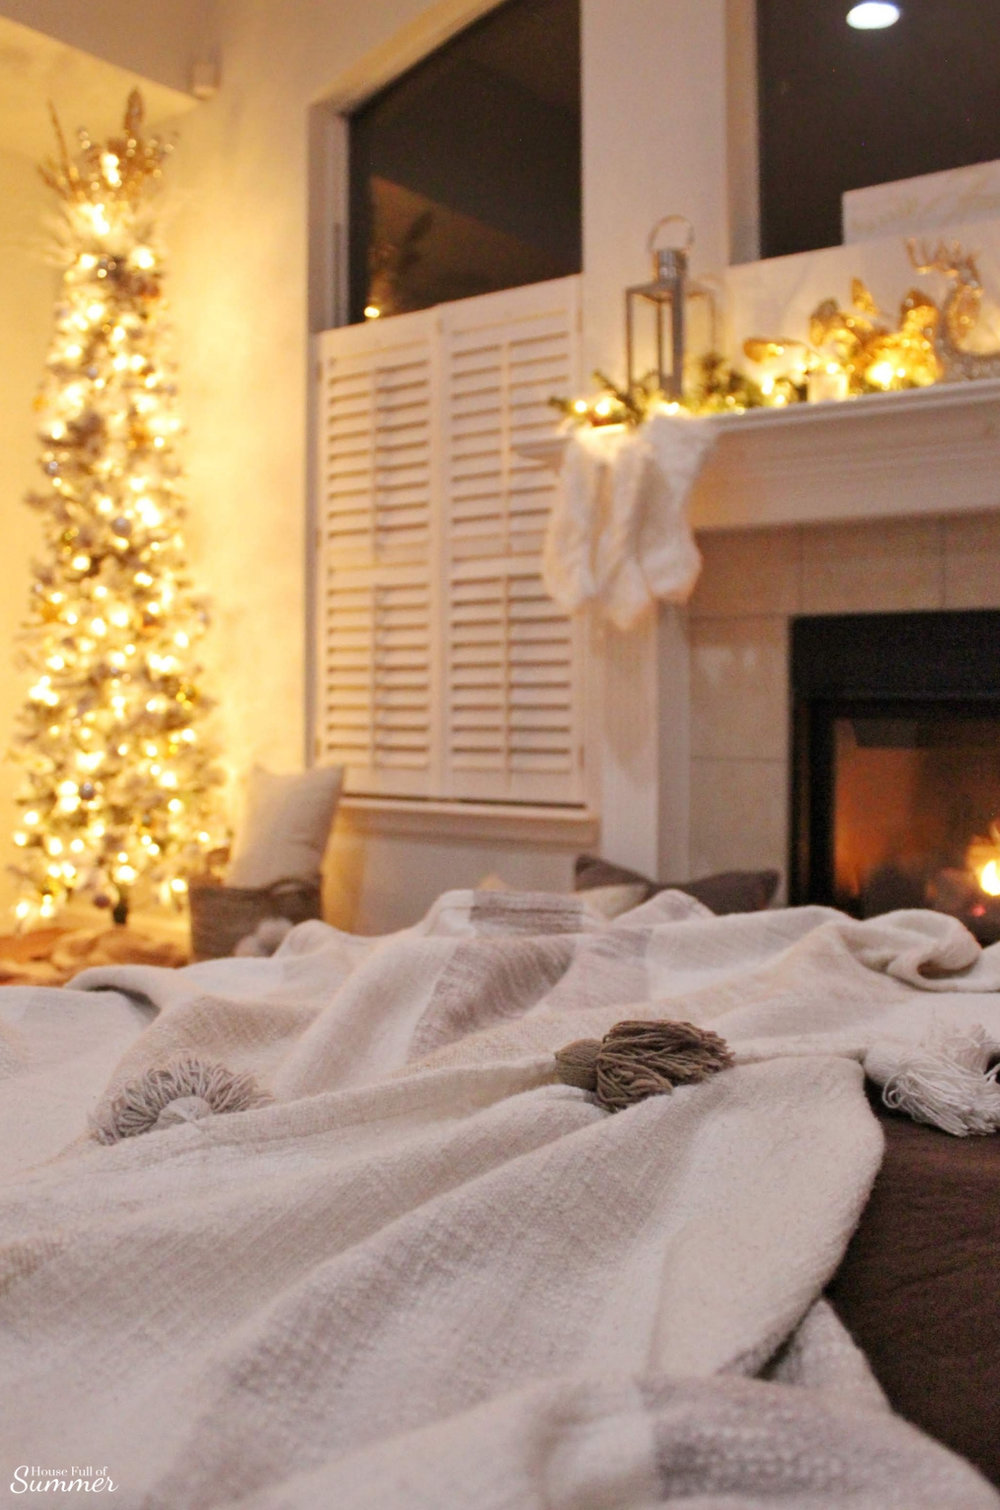 Cozy Christmas Nights by the Fire | white area rug, mantel decor, gold glam decor, pencil christmas tree, plantation shutters, Southern home charm, Coastal Christmas decor, Christmas in Florida, family room, living room, dog friendly, House Full of Summer